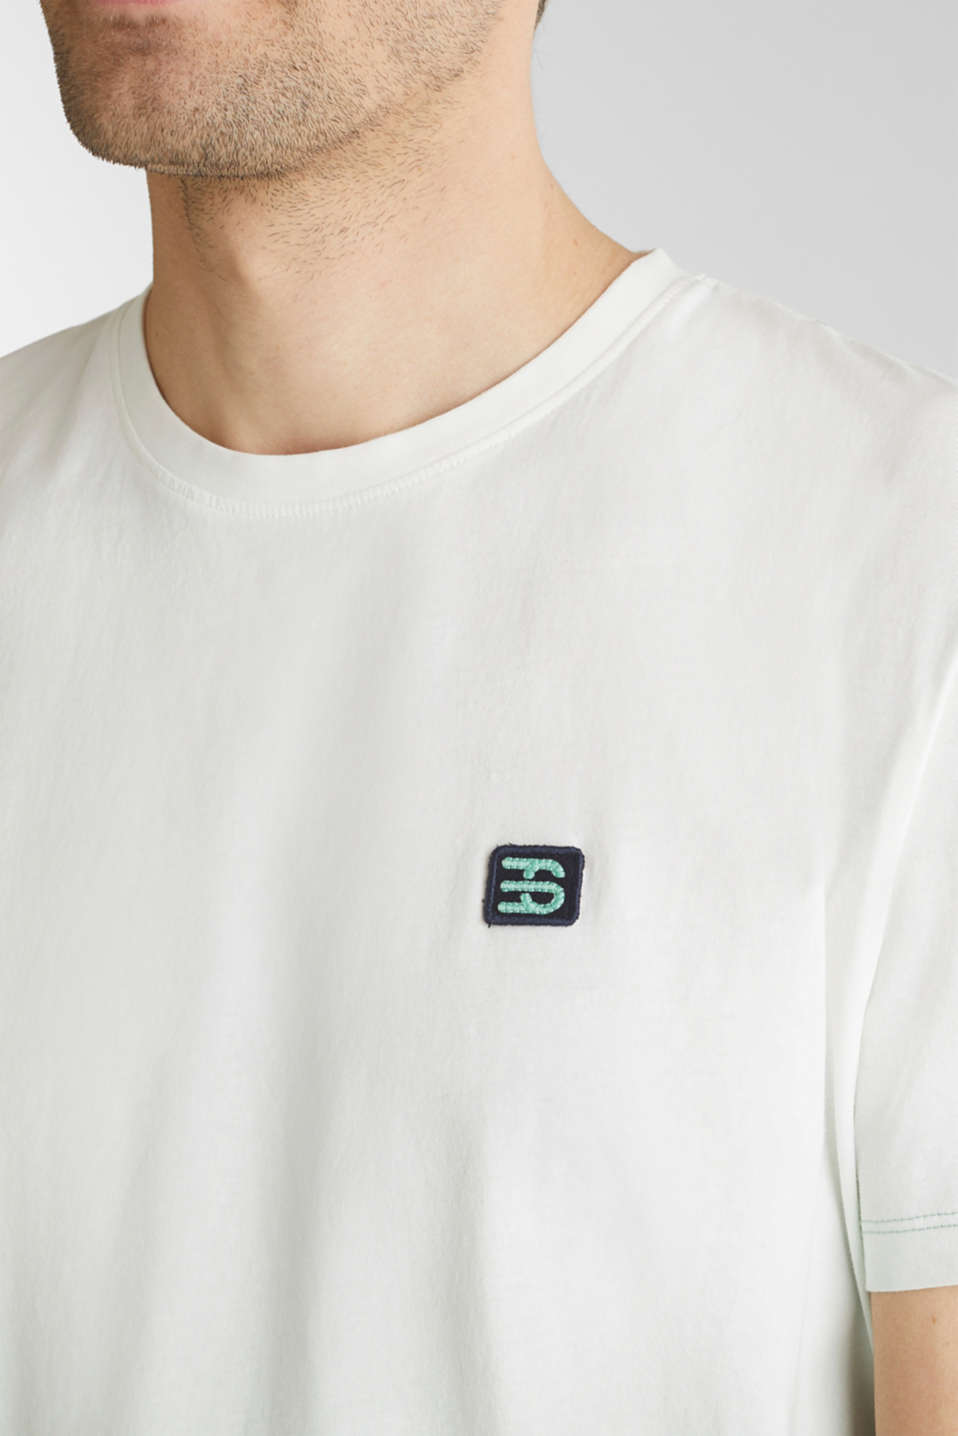 Jersey T-shirt with graduated colours, 100% cotton, TEAL GREEN 2, detail image number 1